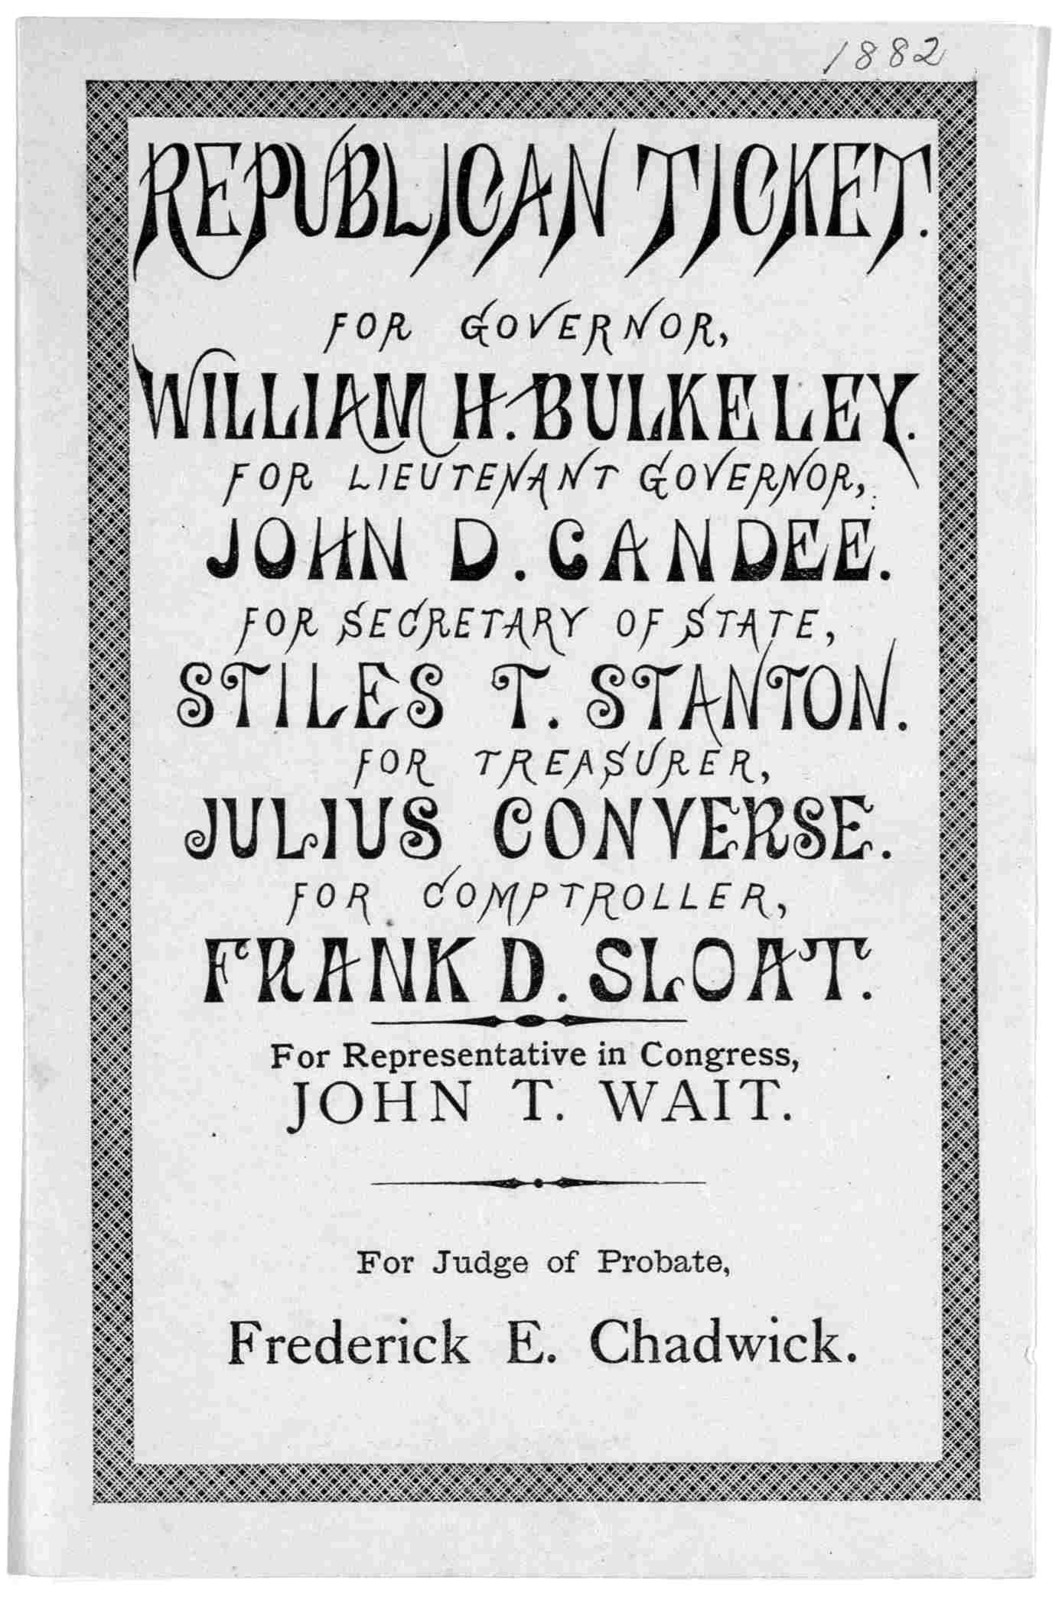 Republican ticket. For Governor. William H. Bulkeley. For Lieutenant Governor, John D. Candee. For Secretary of State, Stiles T. Stanton. For treasurer, Julius Converse. For comptroller, Frank D. Sloat. For representative in Congress, John T. Wa